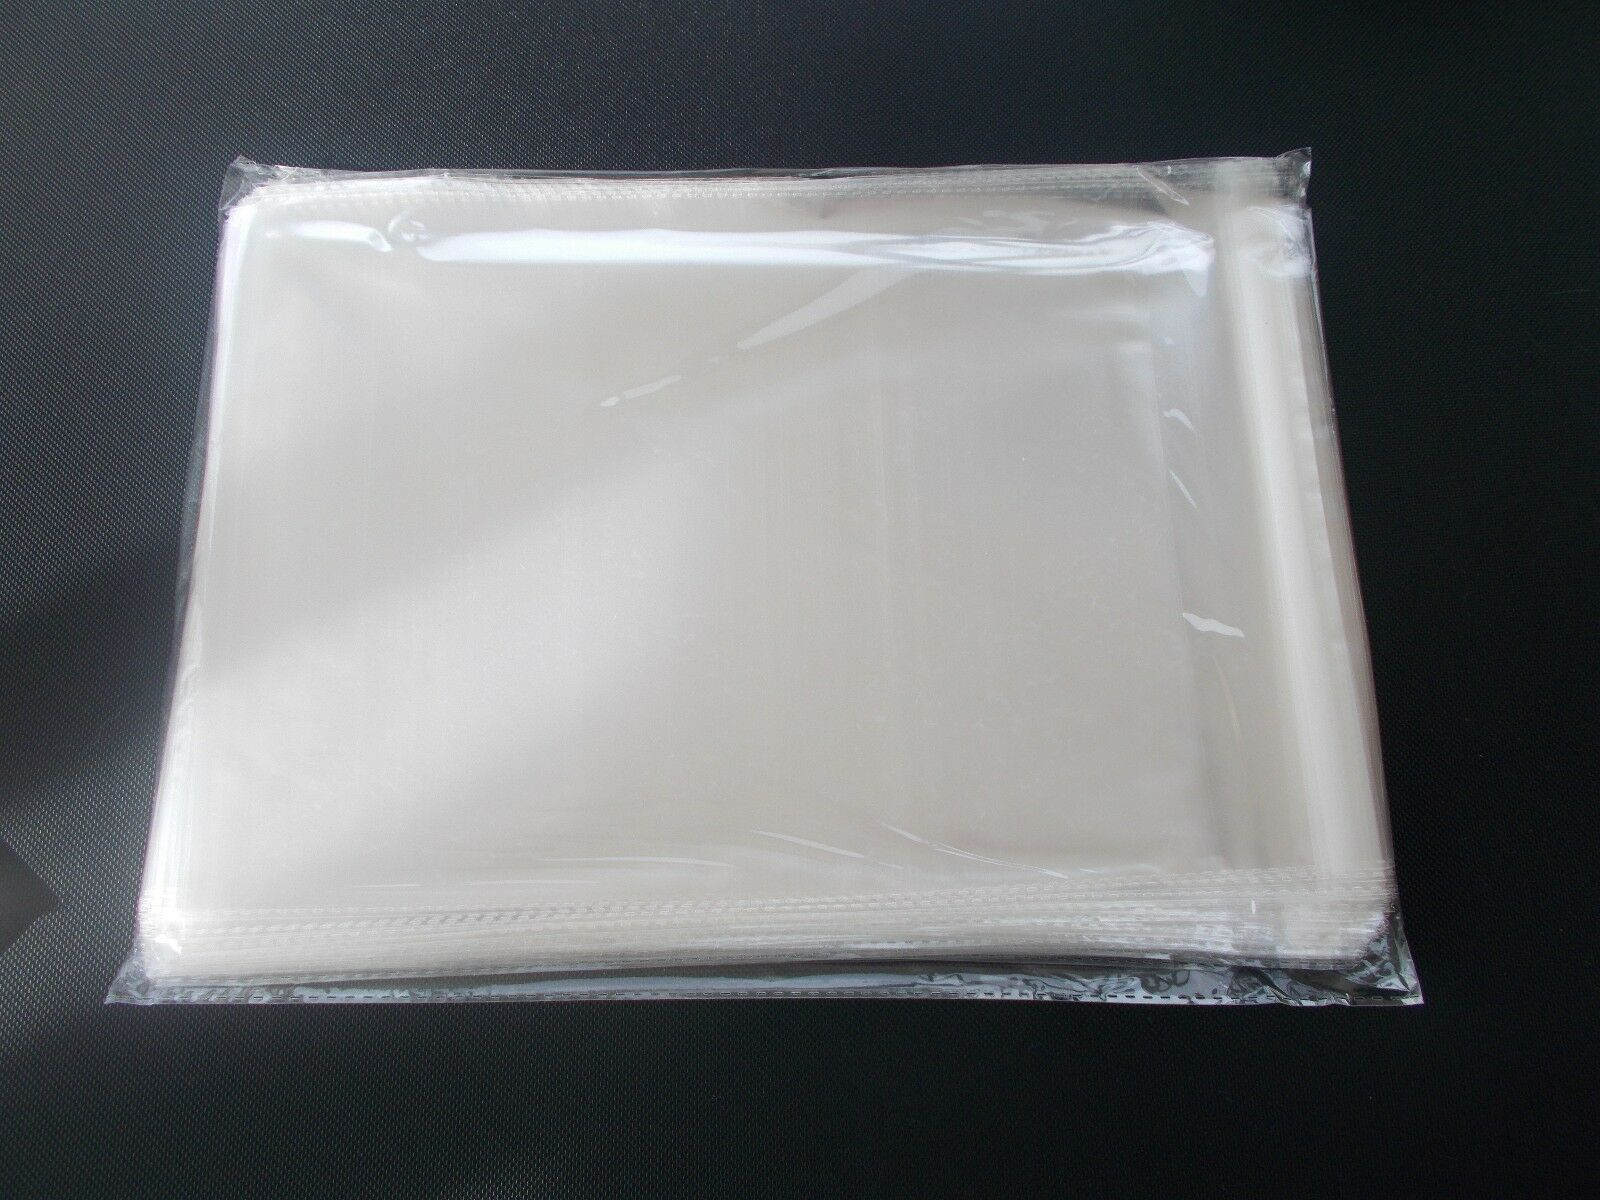 100 5 X 7 Clear Resealable Cello Bag Plastic Envelopes Bags Sleeves